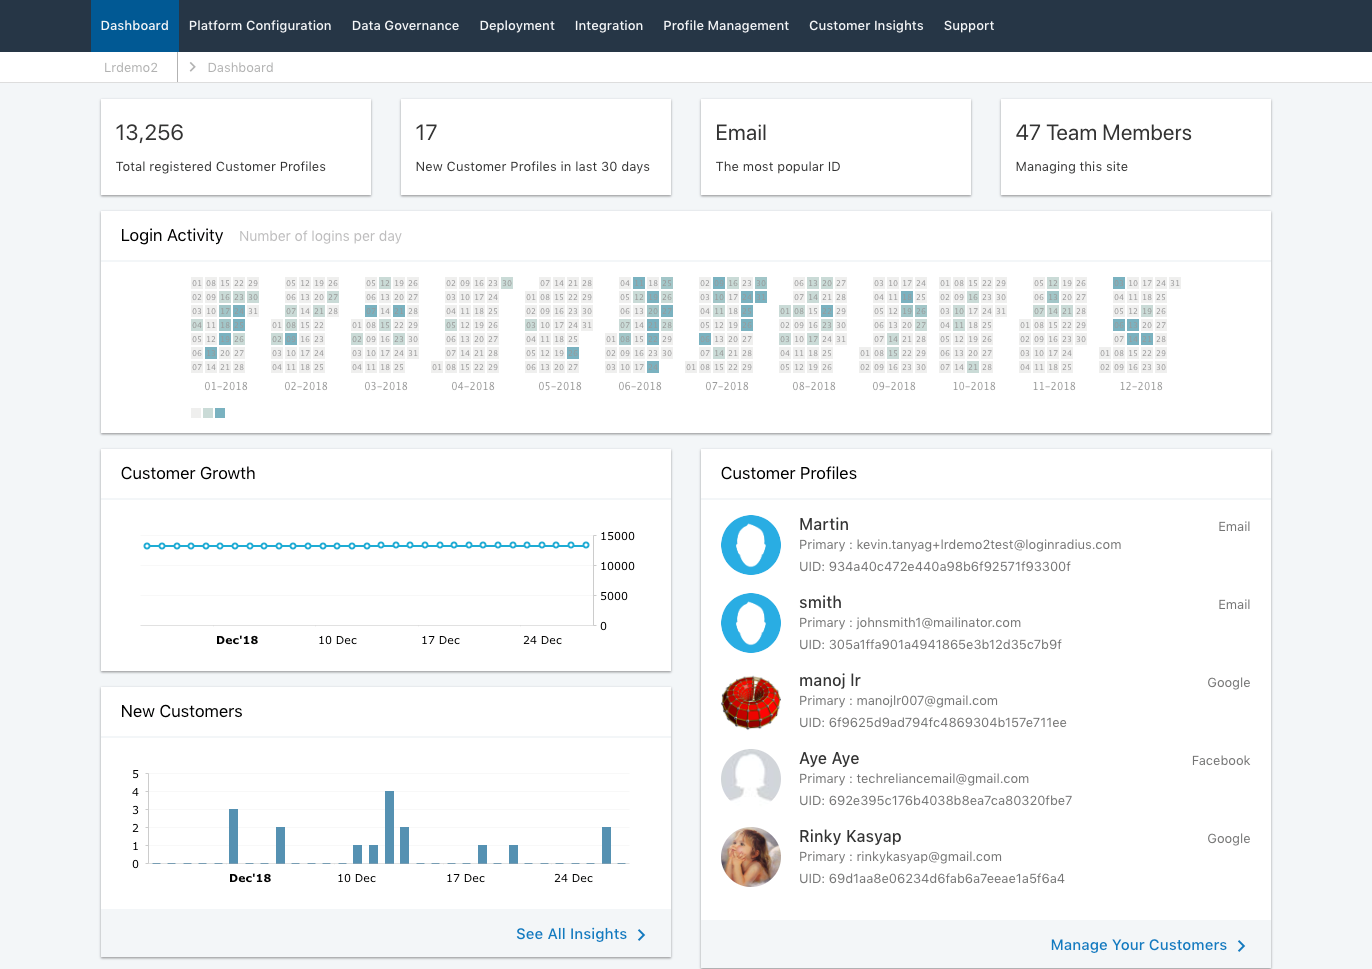 Dashboard: The homepage of the LoginRadius CIAM dashboard, with easy-to-understand analytics information.